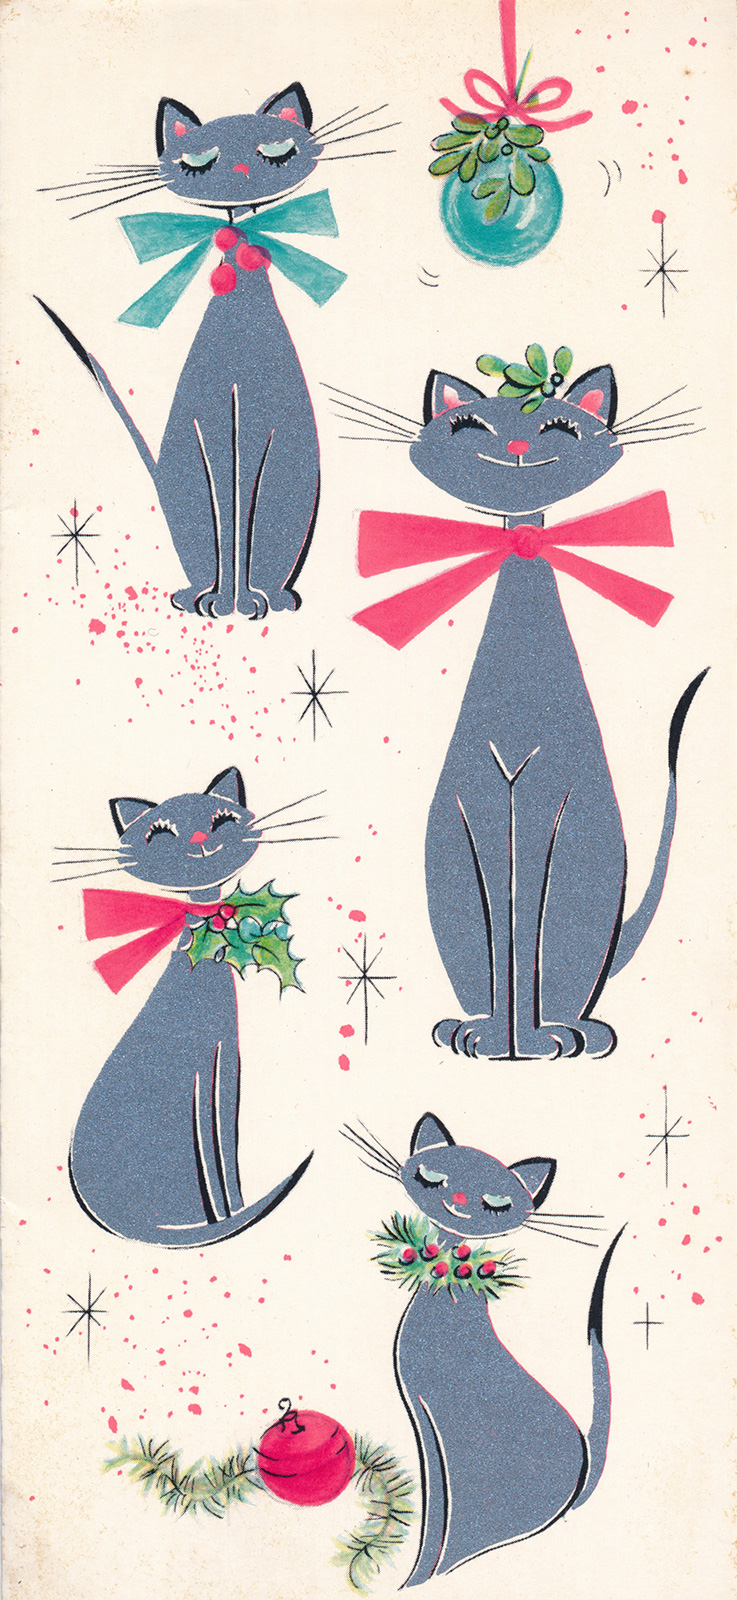 Four silver cats sit on a white card. Two feature pink bow ties, one has a blue bow tie, and another has a sprig of holly.